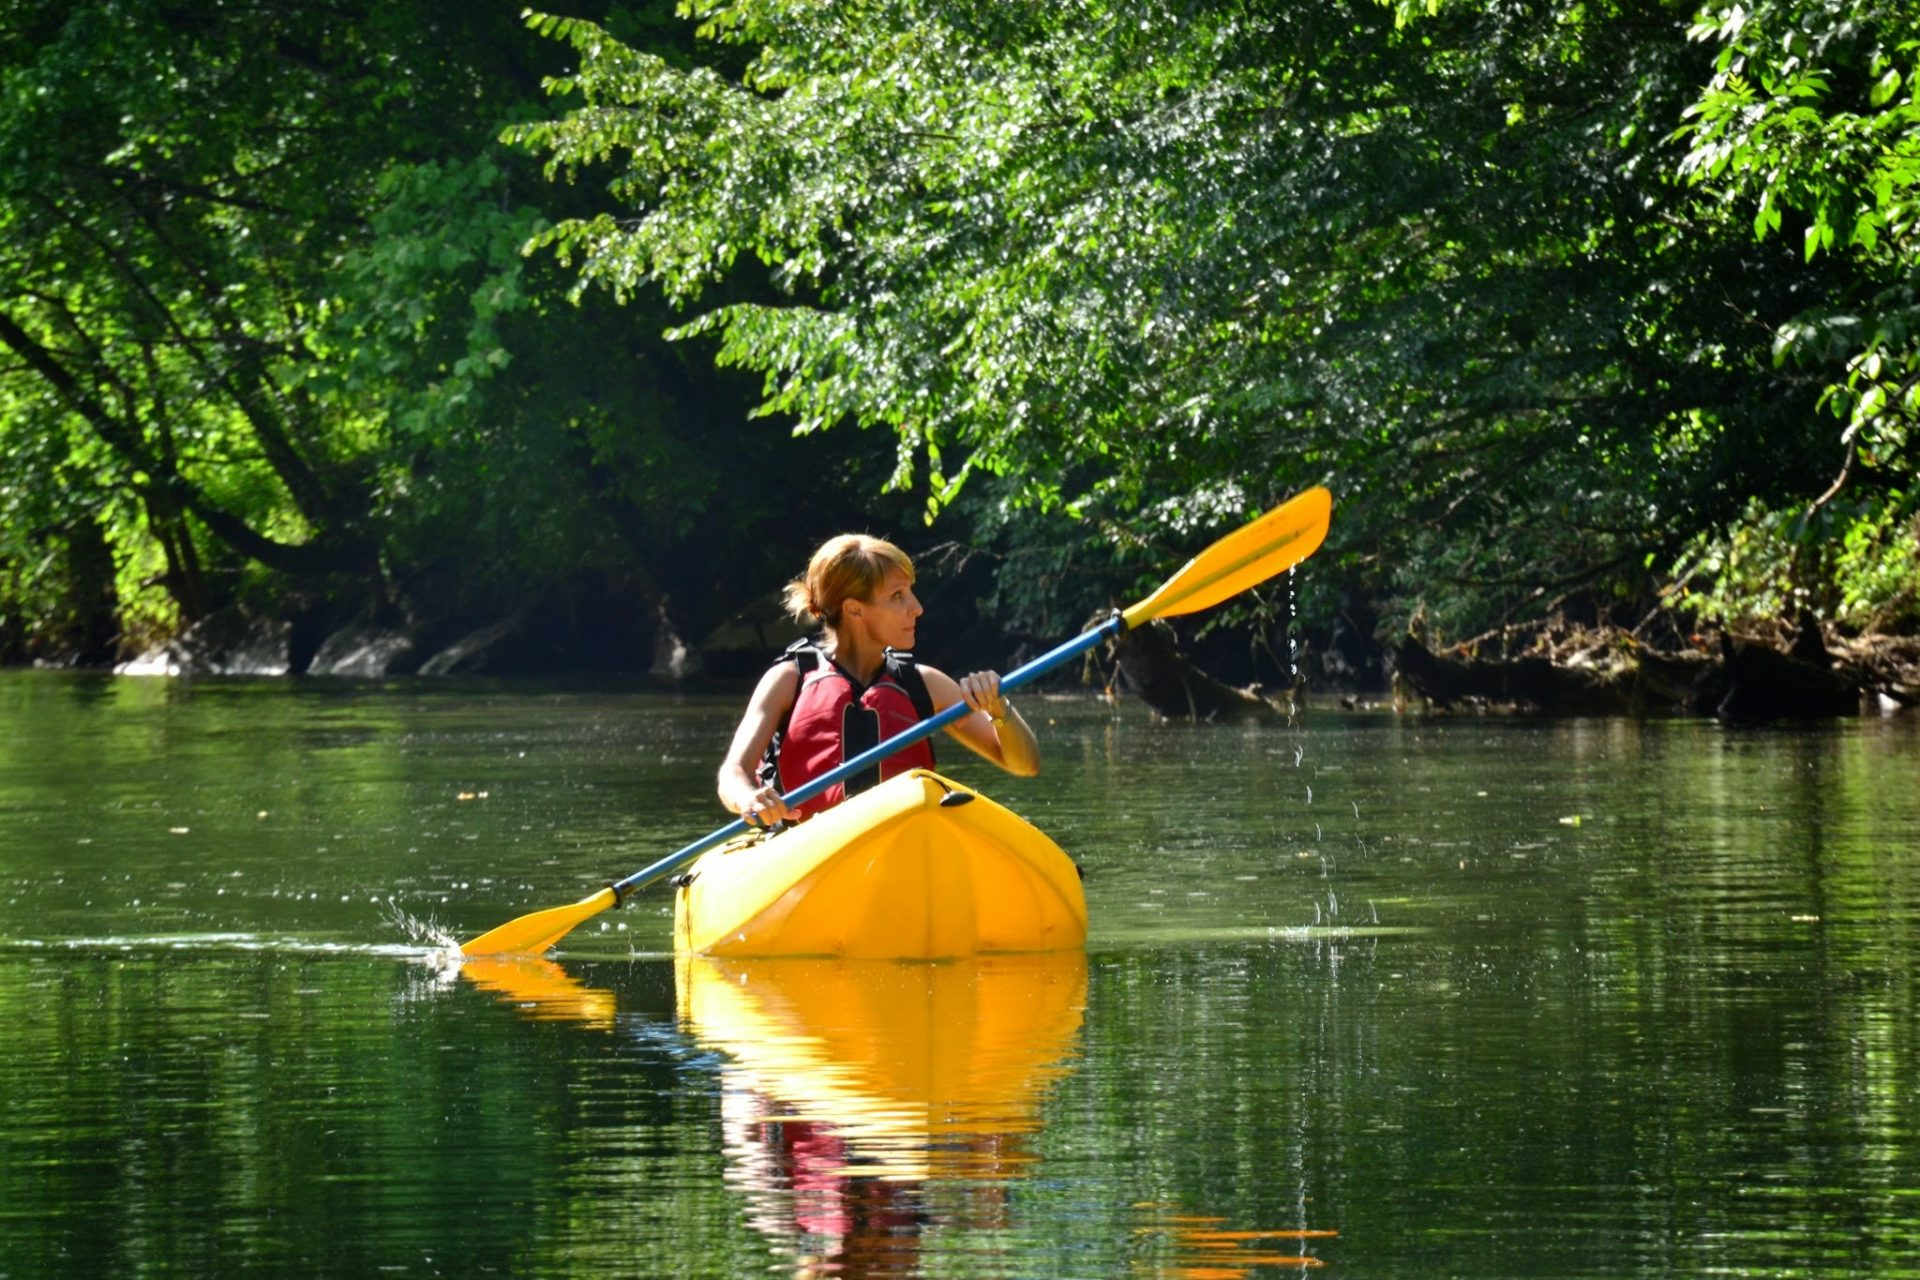 An expert's eye view of the Smith River